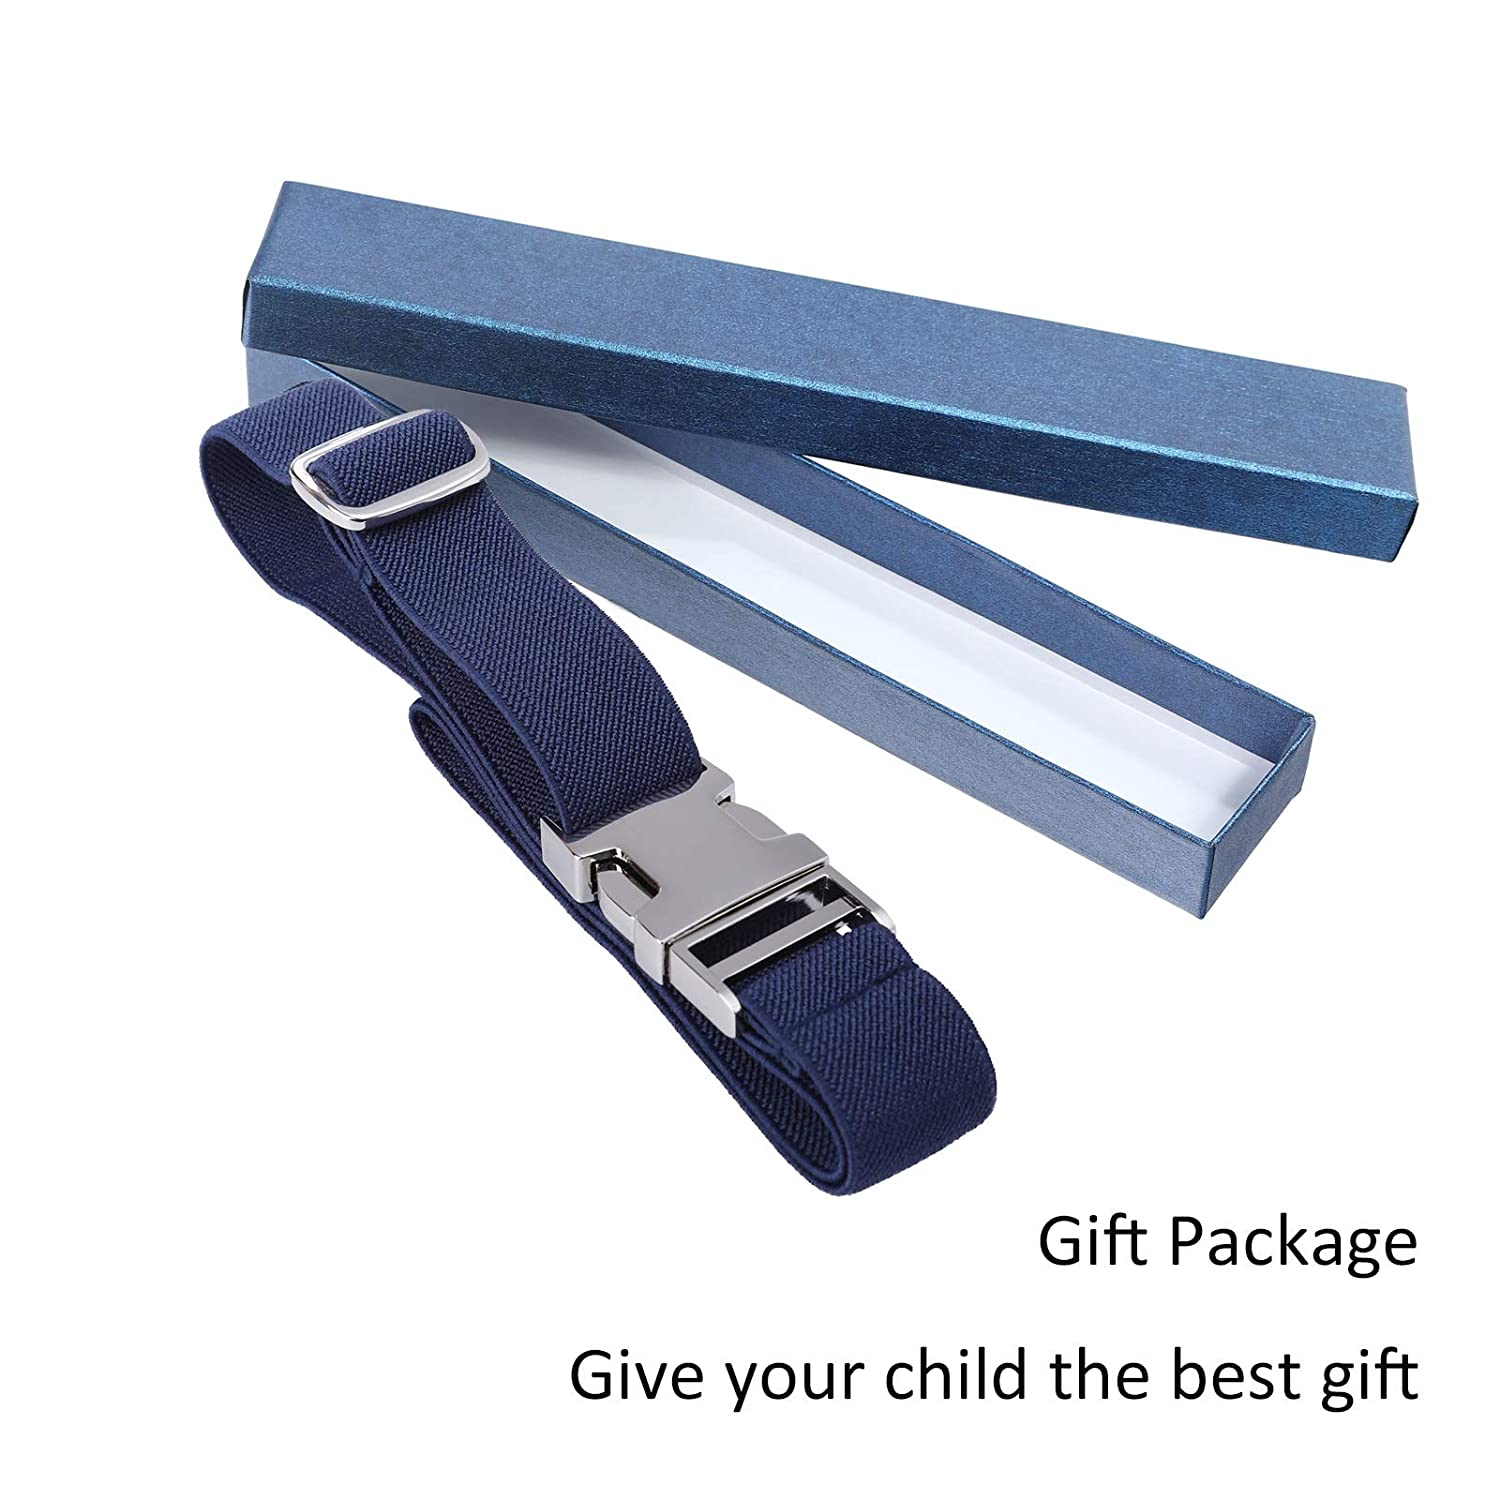 White Kids Toddler Belt Elastic Adjustable Stretch for Boys Girls Belts with Easy Zinc Alloy Buckle by WELROG